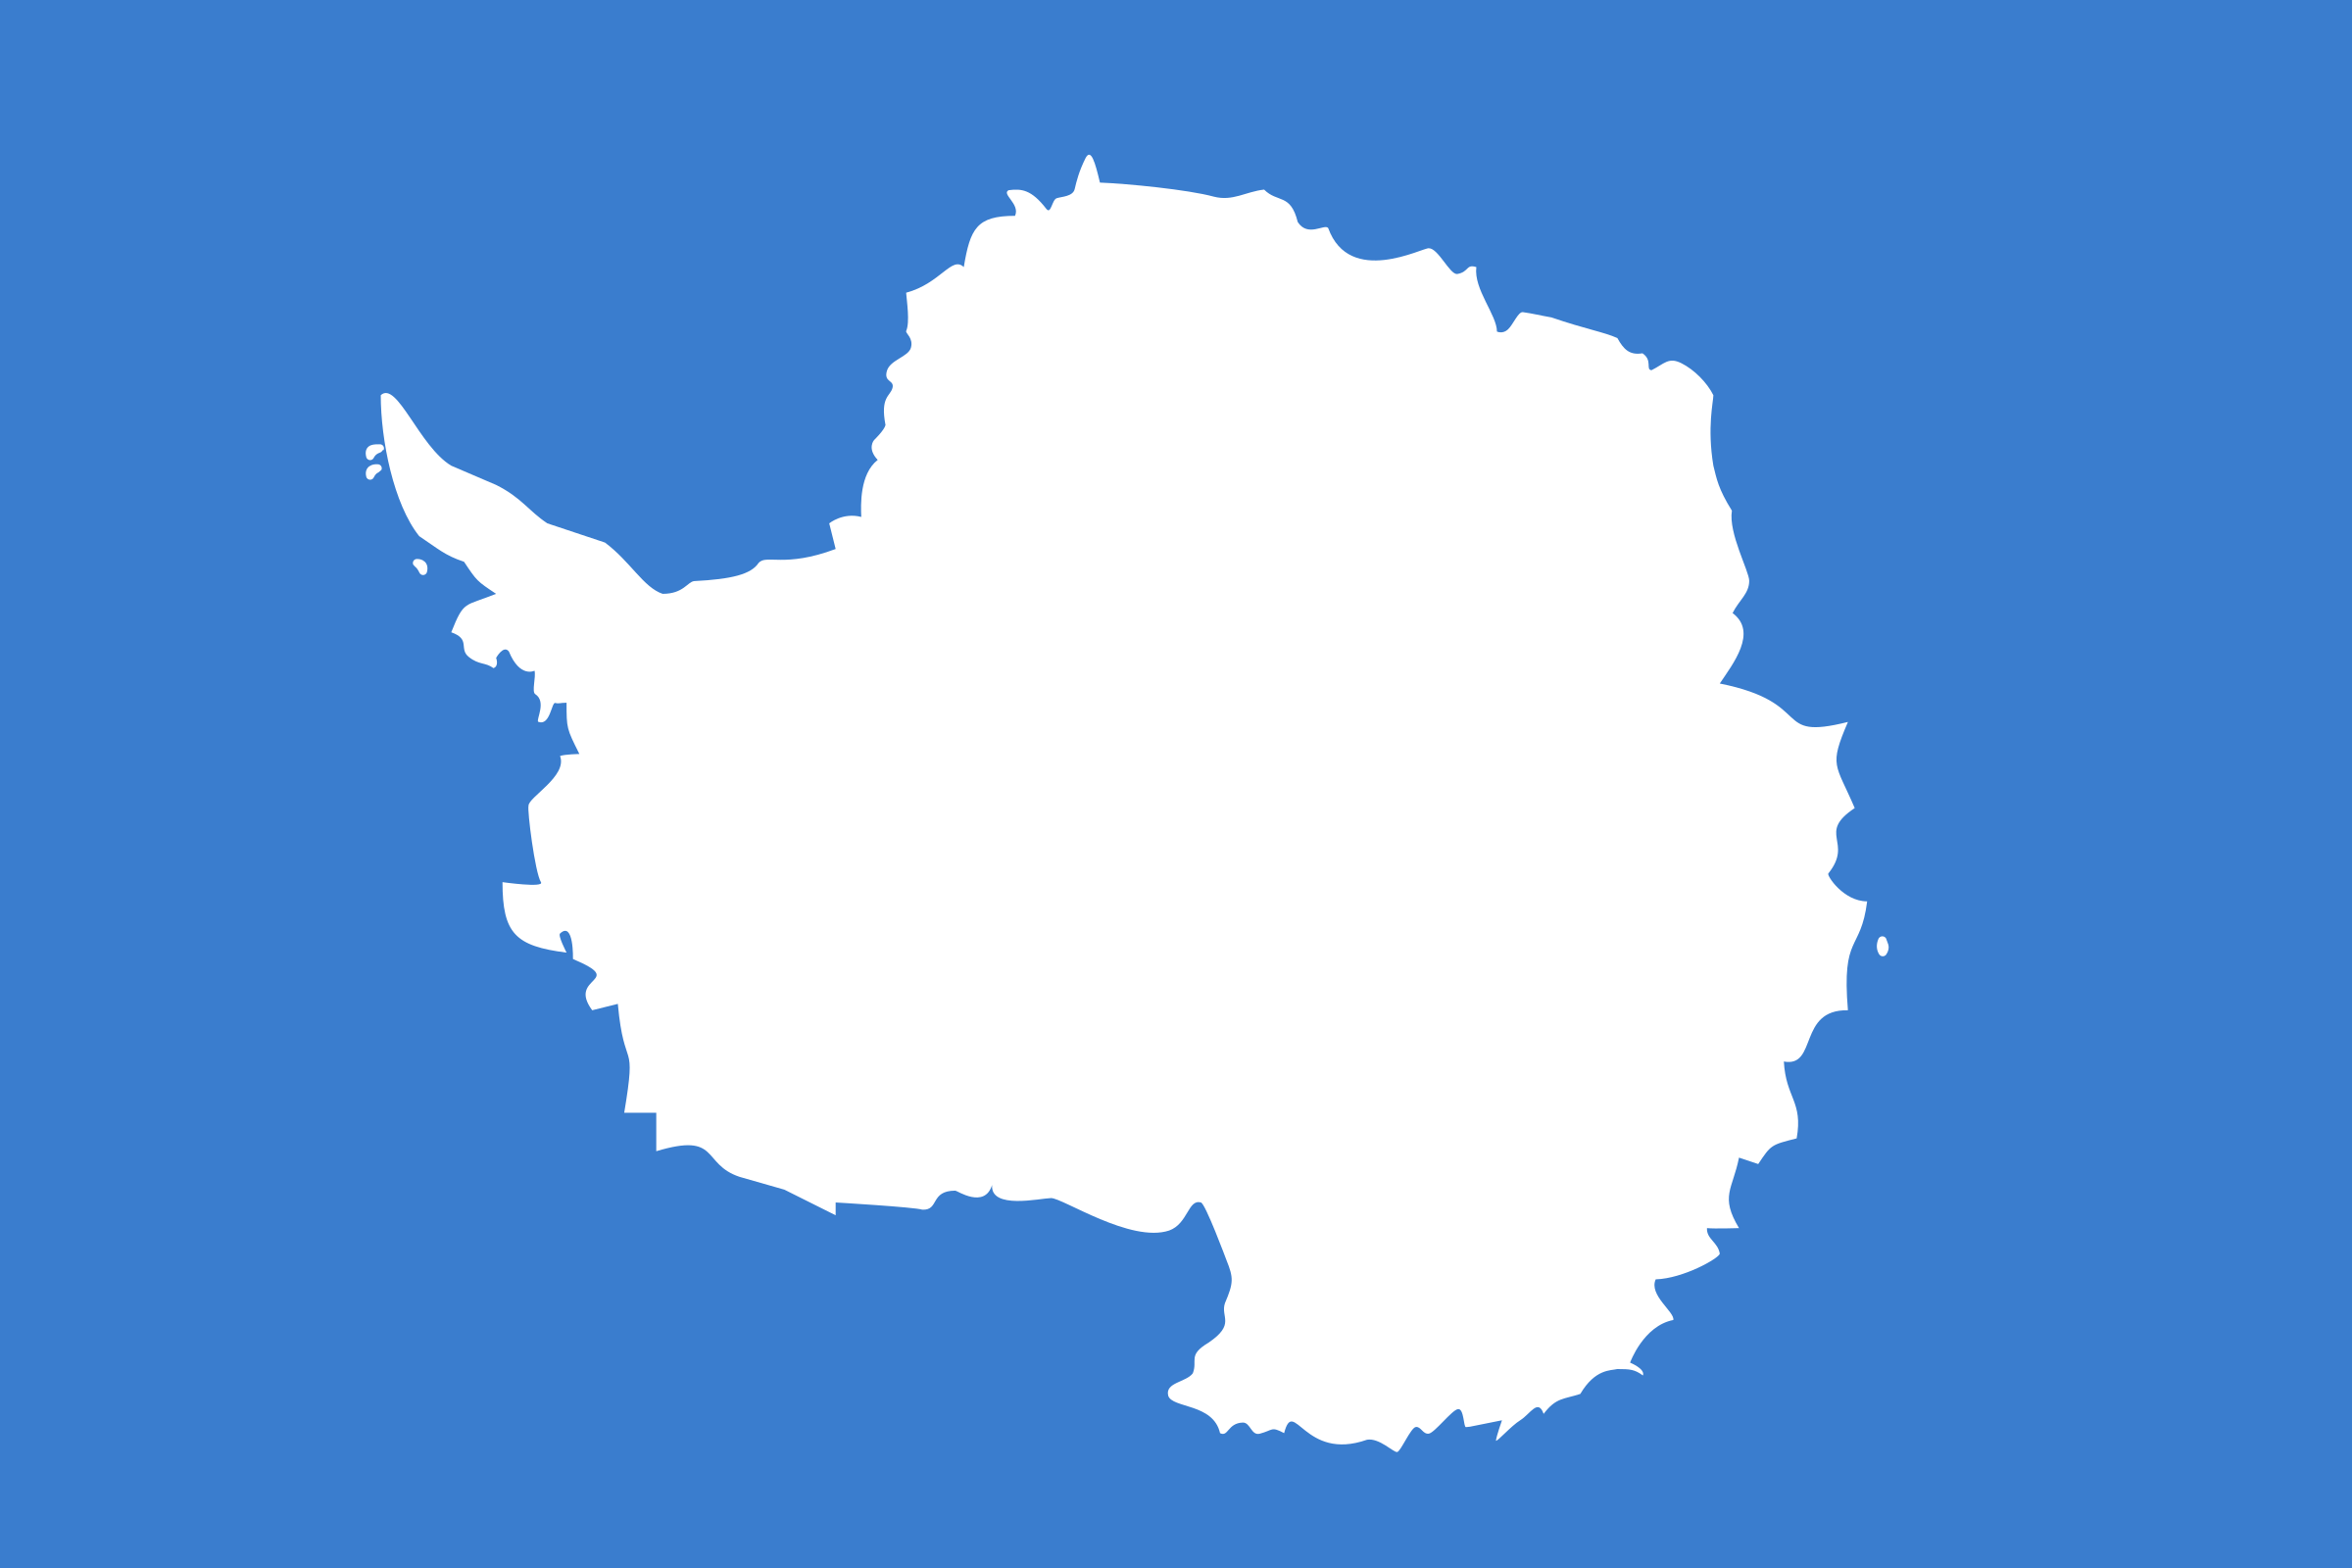 antarctica by Anonymous